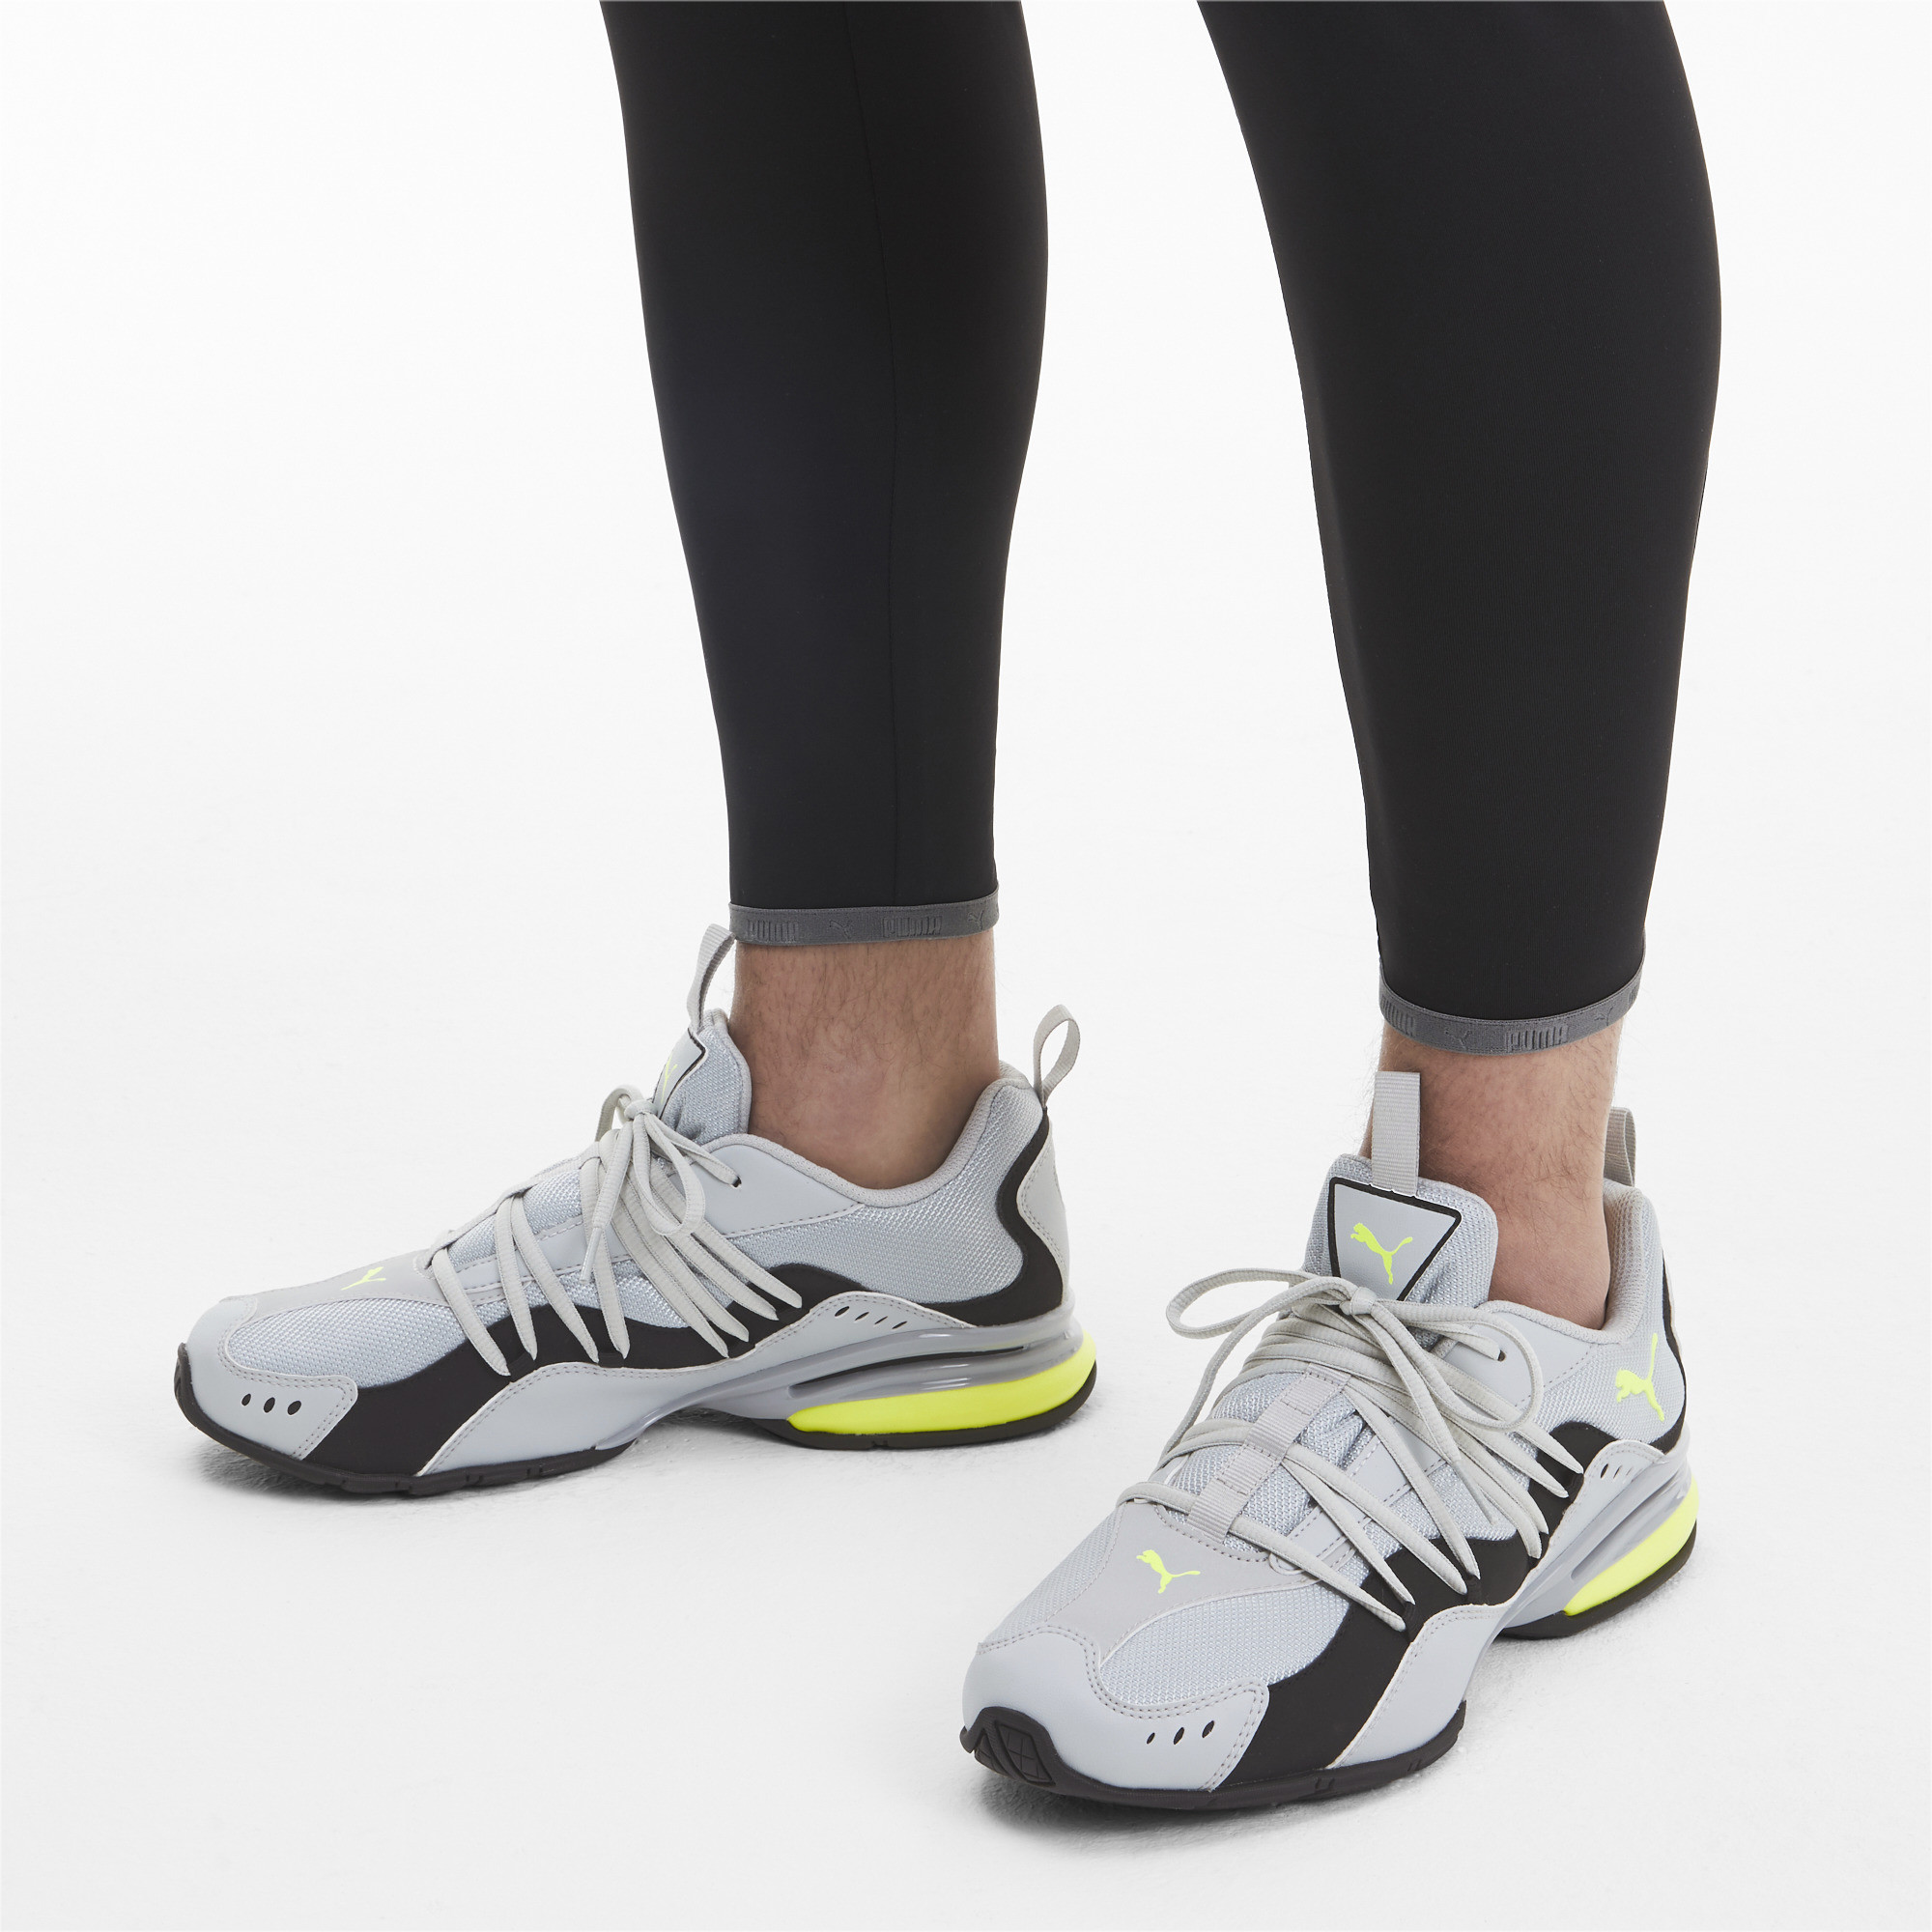 PUMA-Men-039-s-Silverion-Running-Shoes thumbnail 24